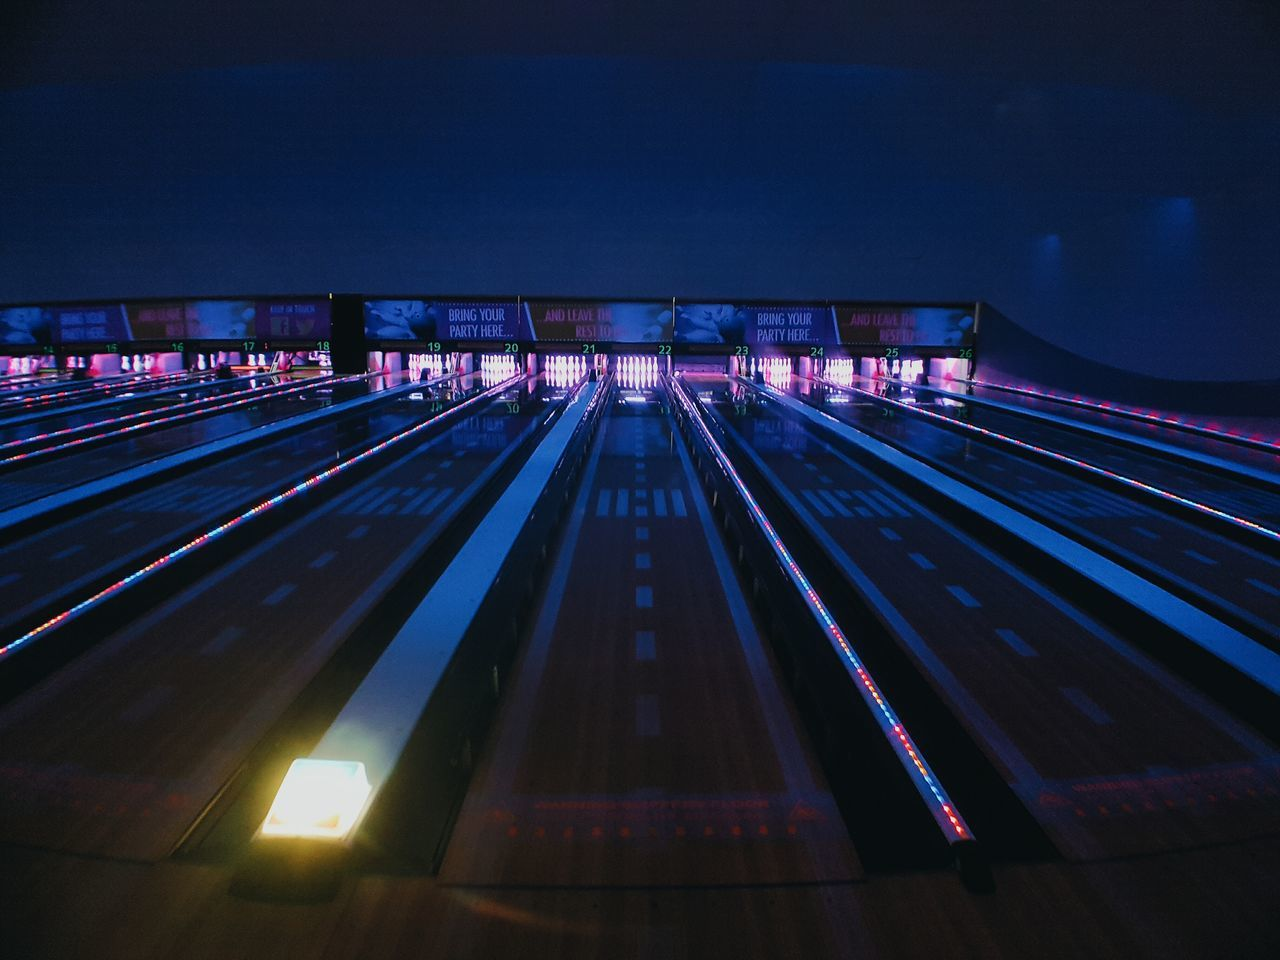 Illuminated Night Transportation Architecture Built Structure No People Outdoors Sky Bowling Bowling Alley